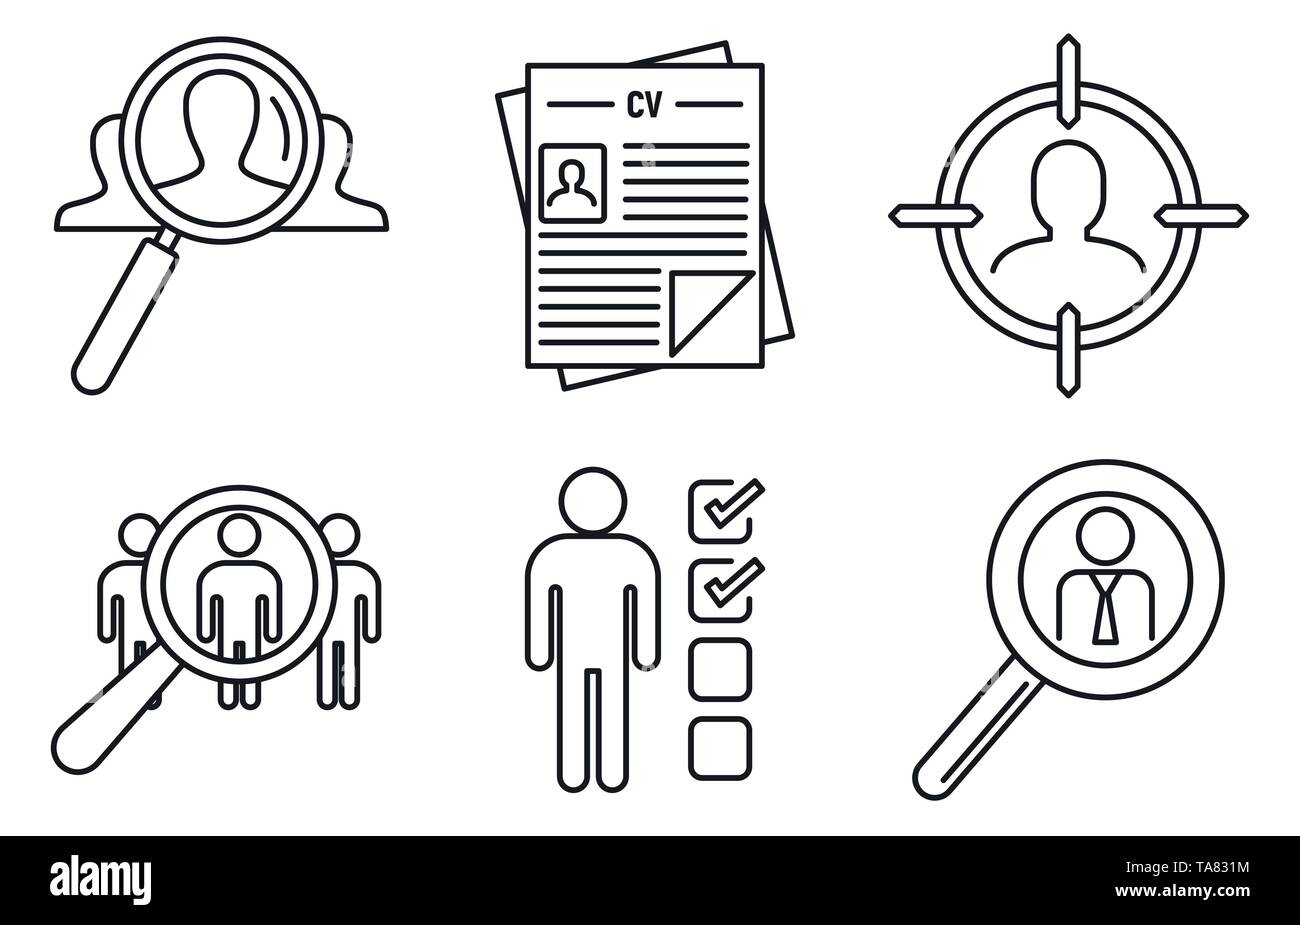 Recruitment expert icons set. Outline set of recruitment expert vector icons for web design isolated on white background - Stock Image